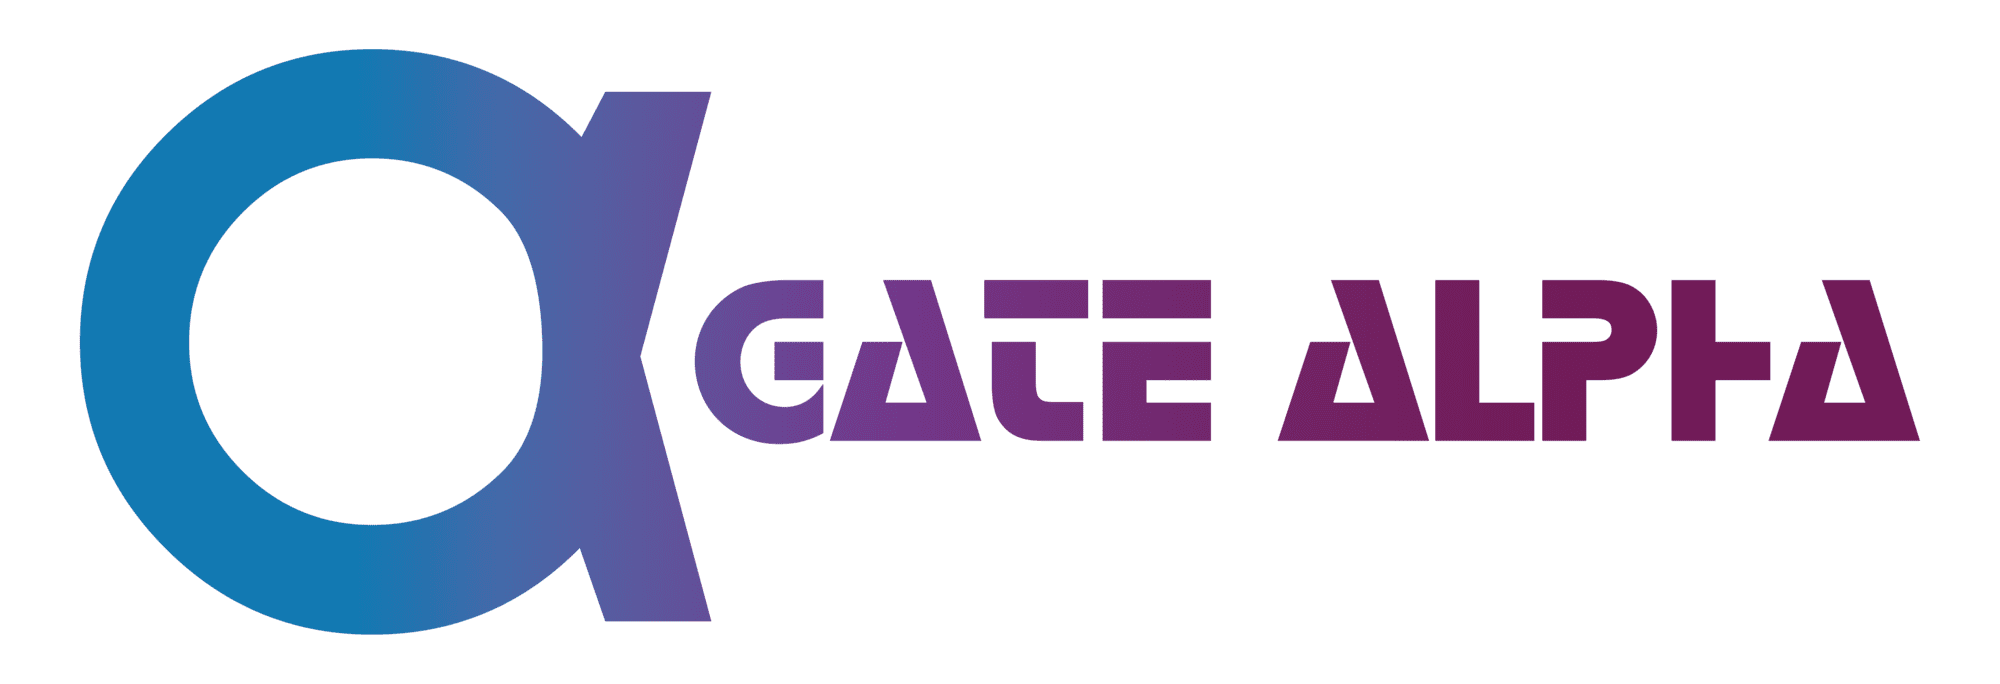 VR Portal Gate Alpha small logo